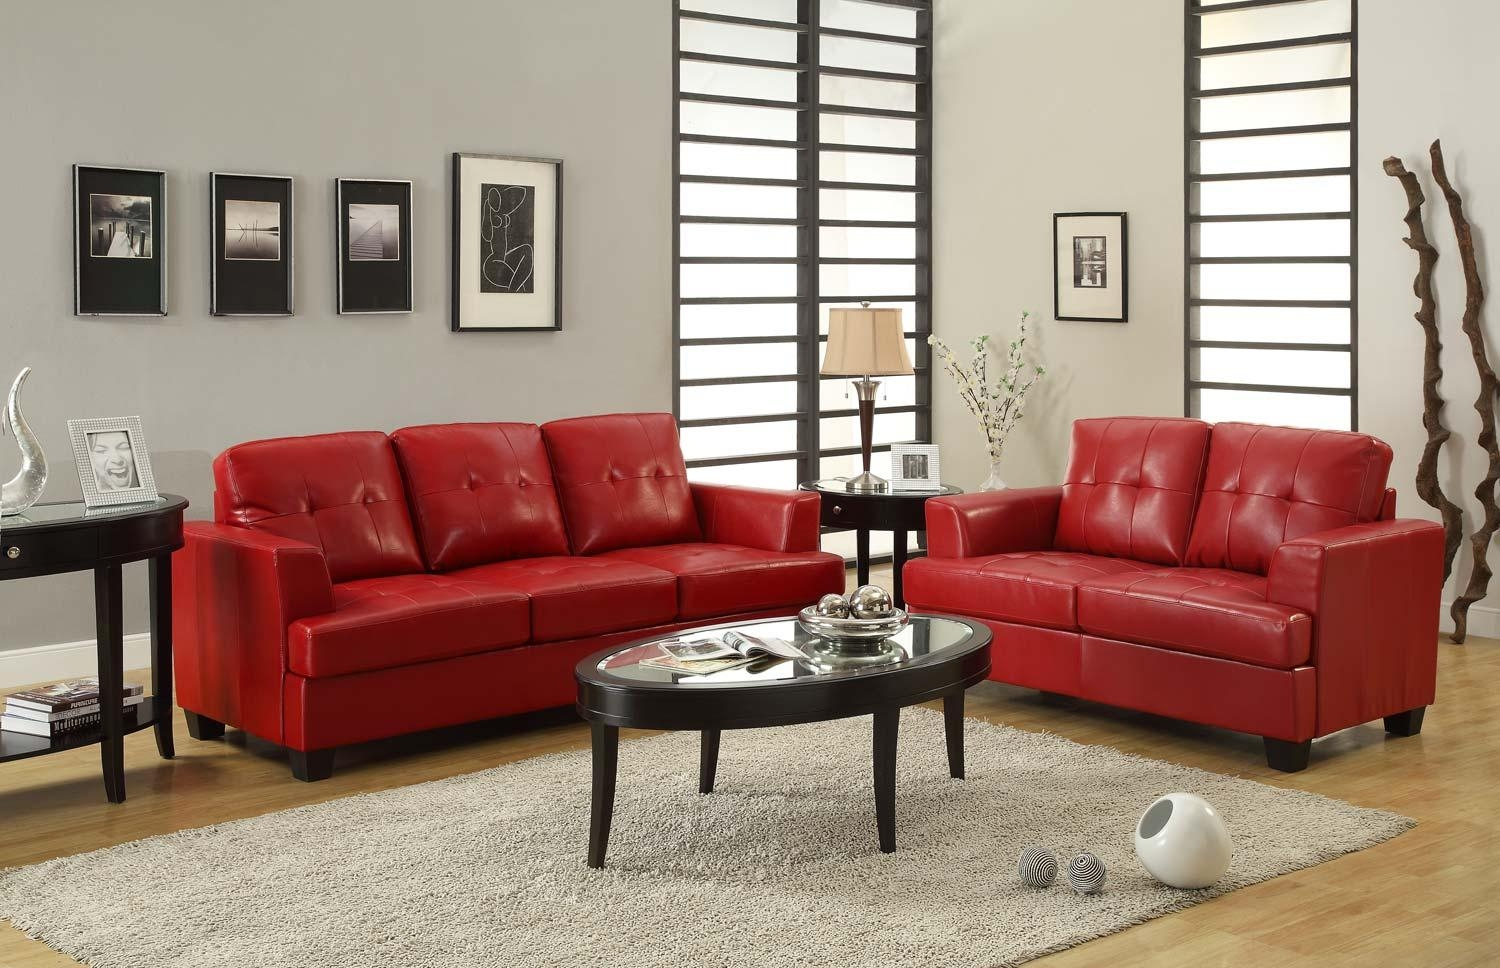 Red Sofa Set In Red Sofas And Chairs (Image 14 of 20)